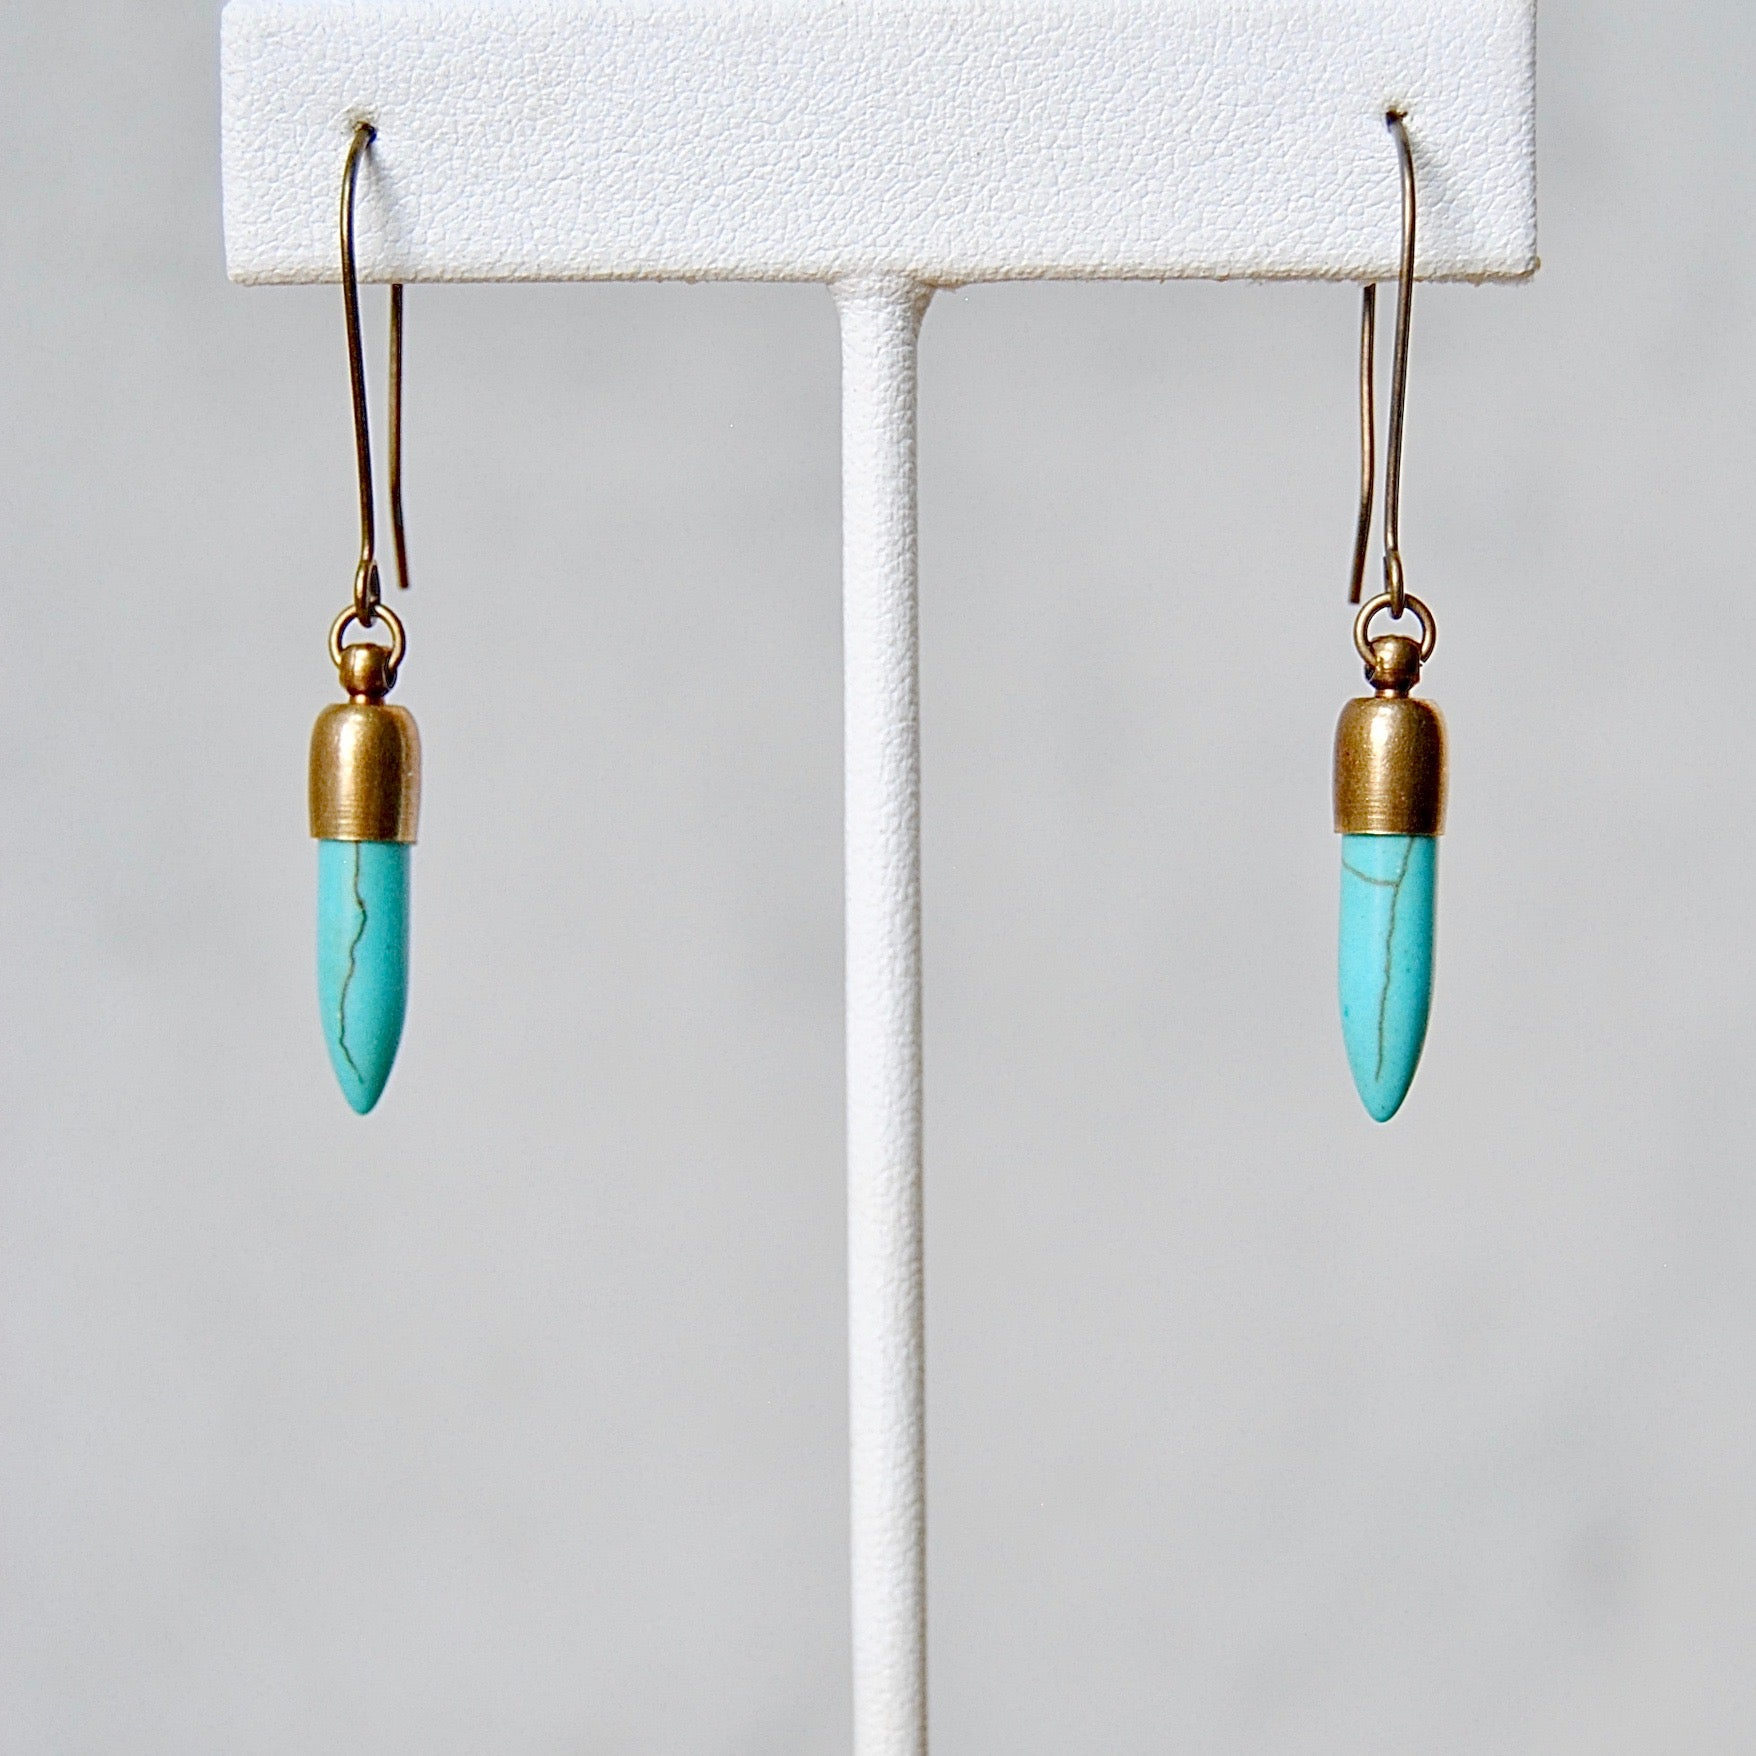 STONE POINT EARRINGS